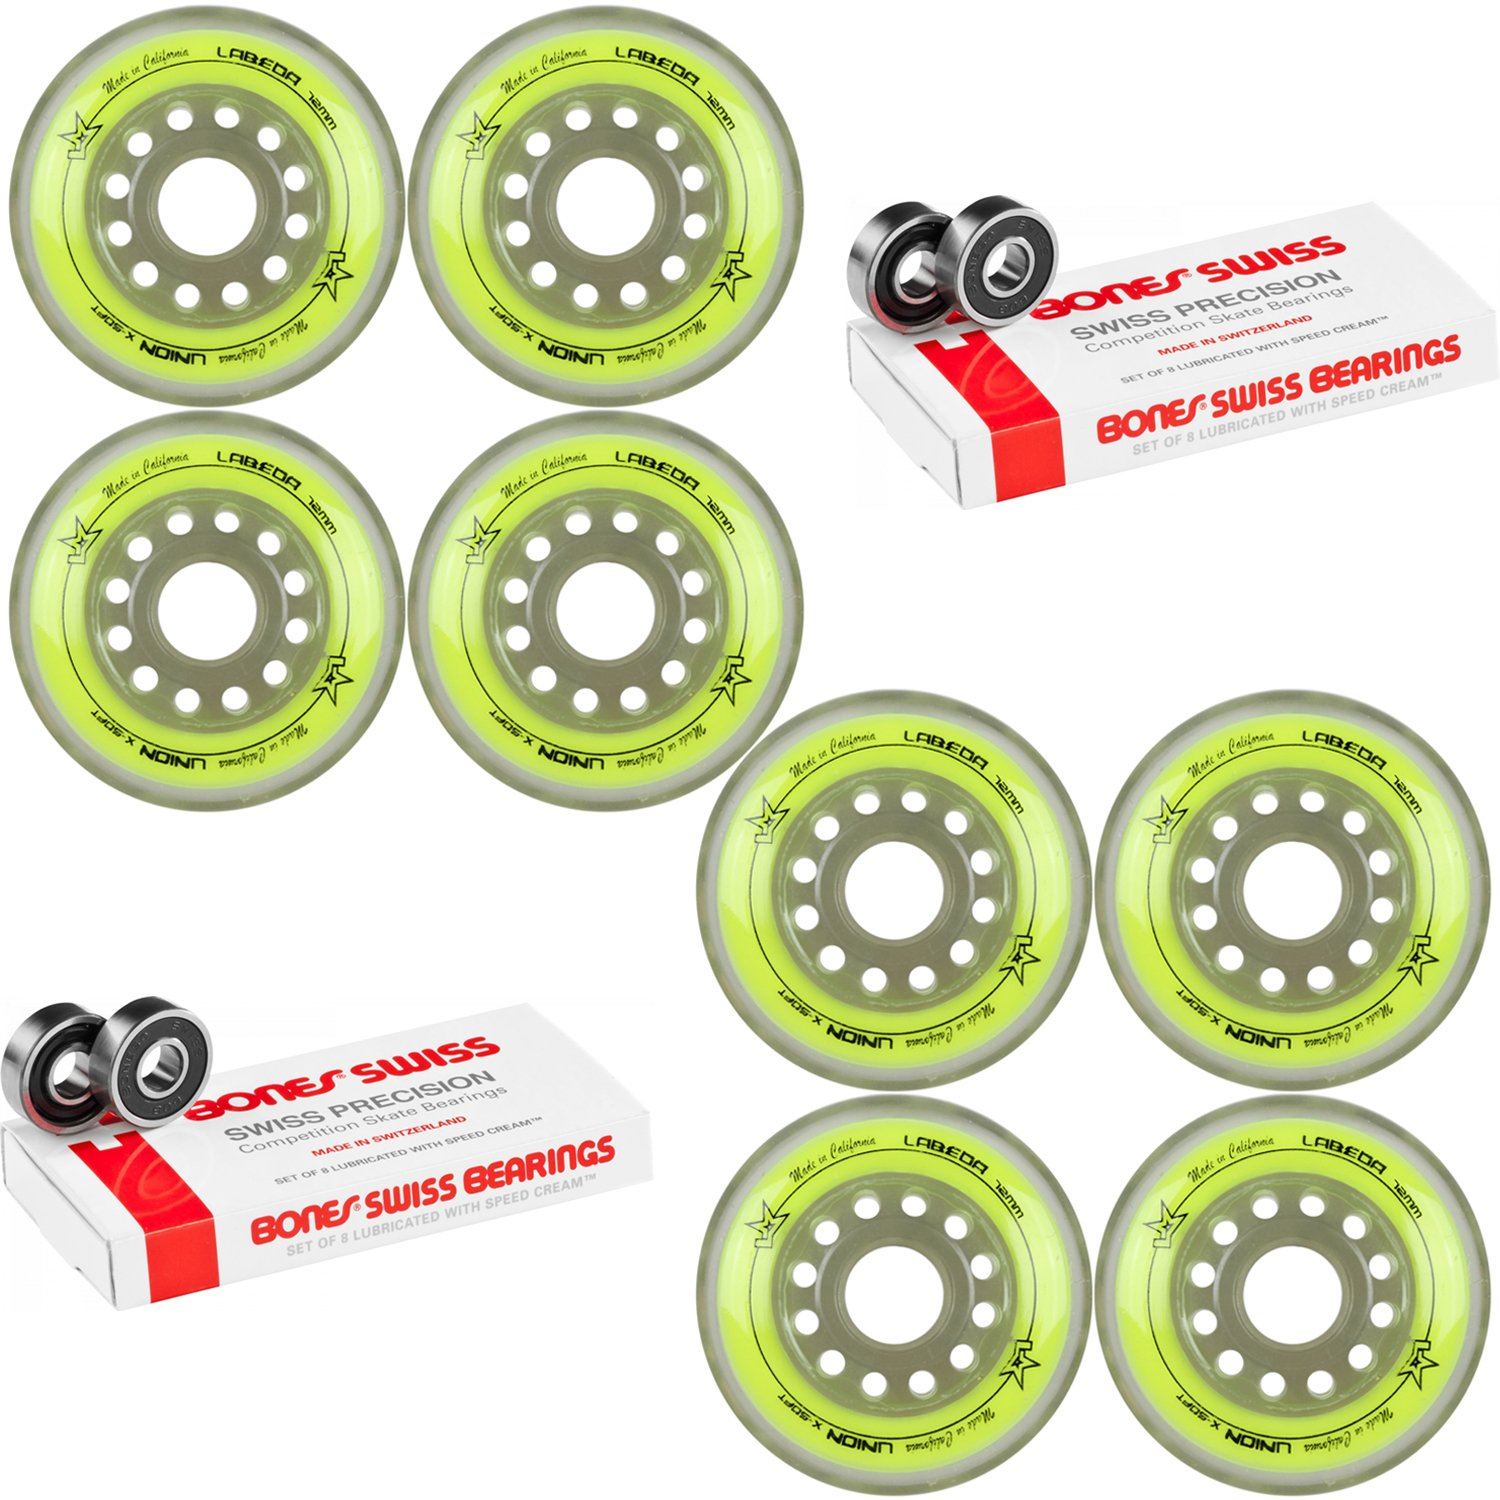 Labeda Inline Roller Hockey Skate Wheels Union Yellow 72mm Set of 8 Bones Swiss